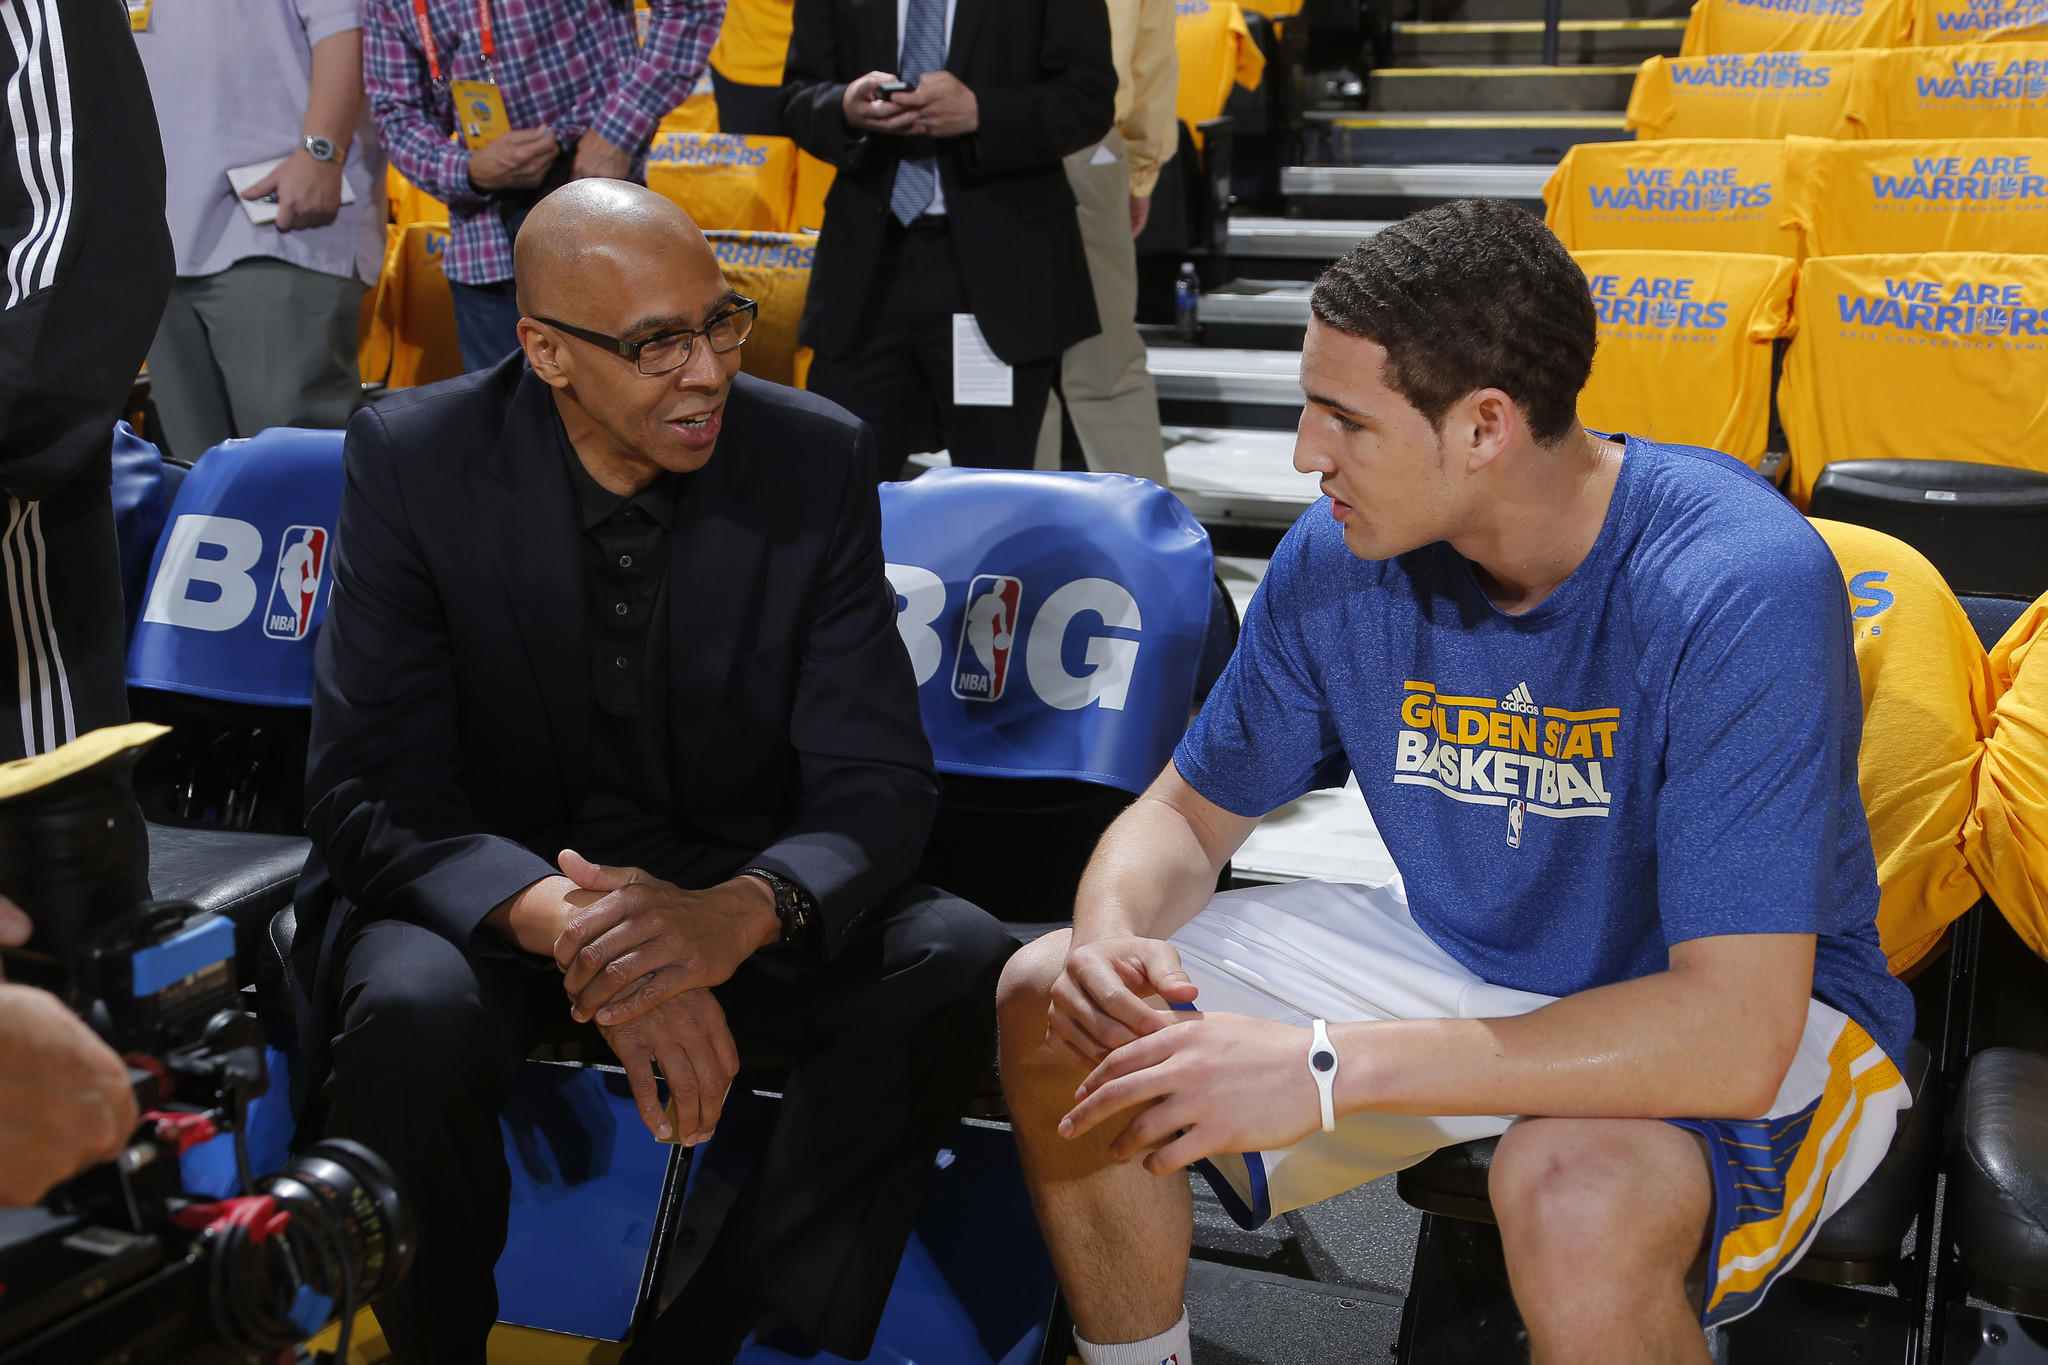 Former Laker and current NBA analyst Mychal Thompson talks to his son Klay, the shooting guard for the Golden State Warriors, before a playoff game last season.